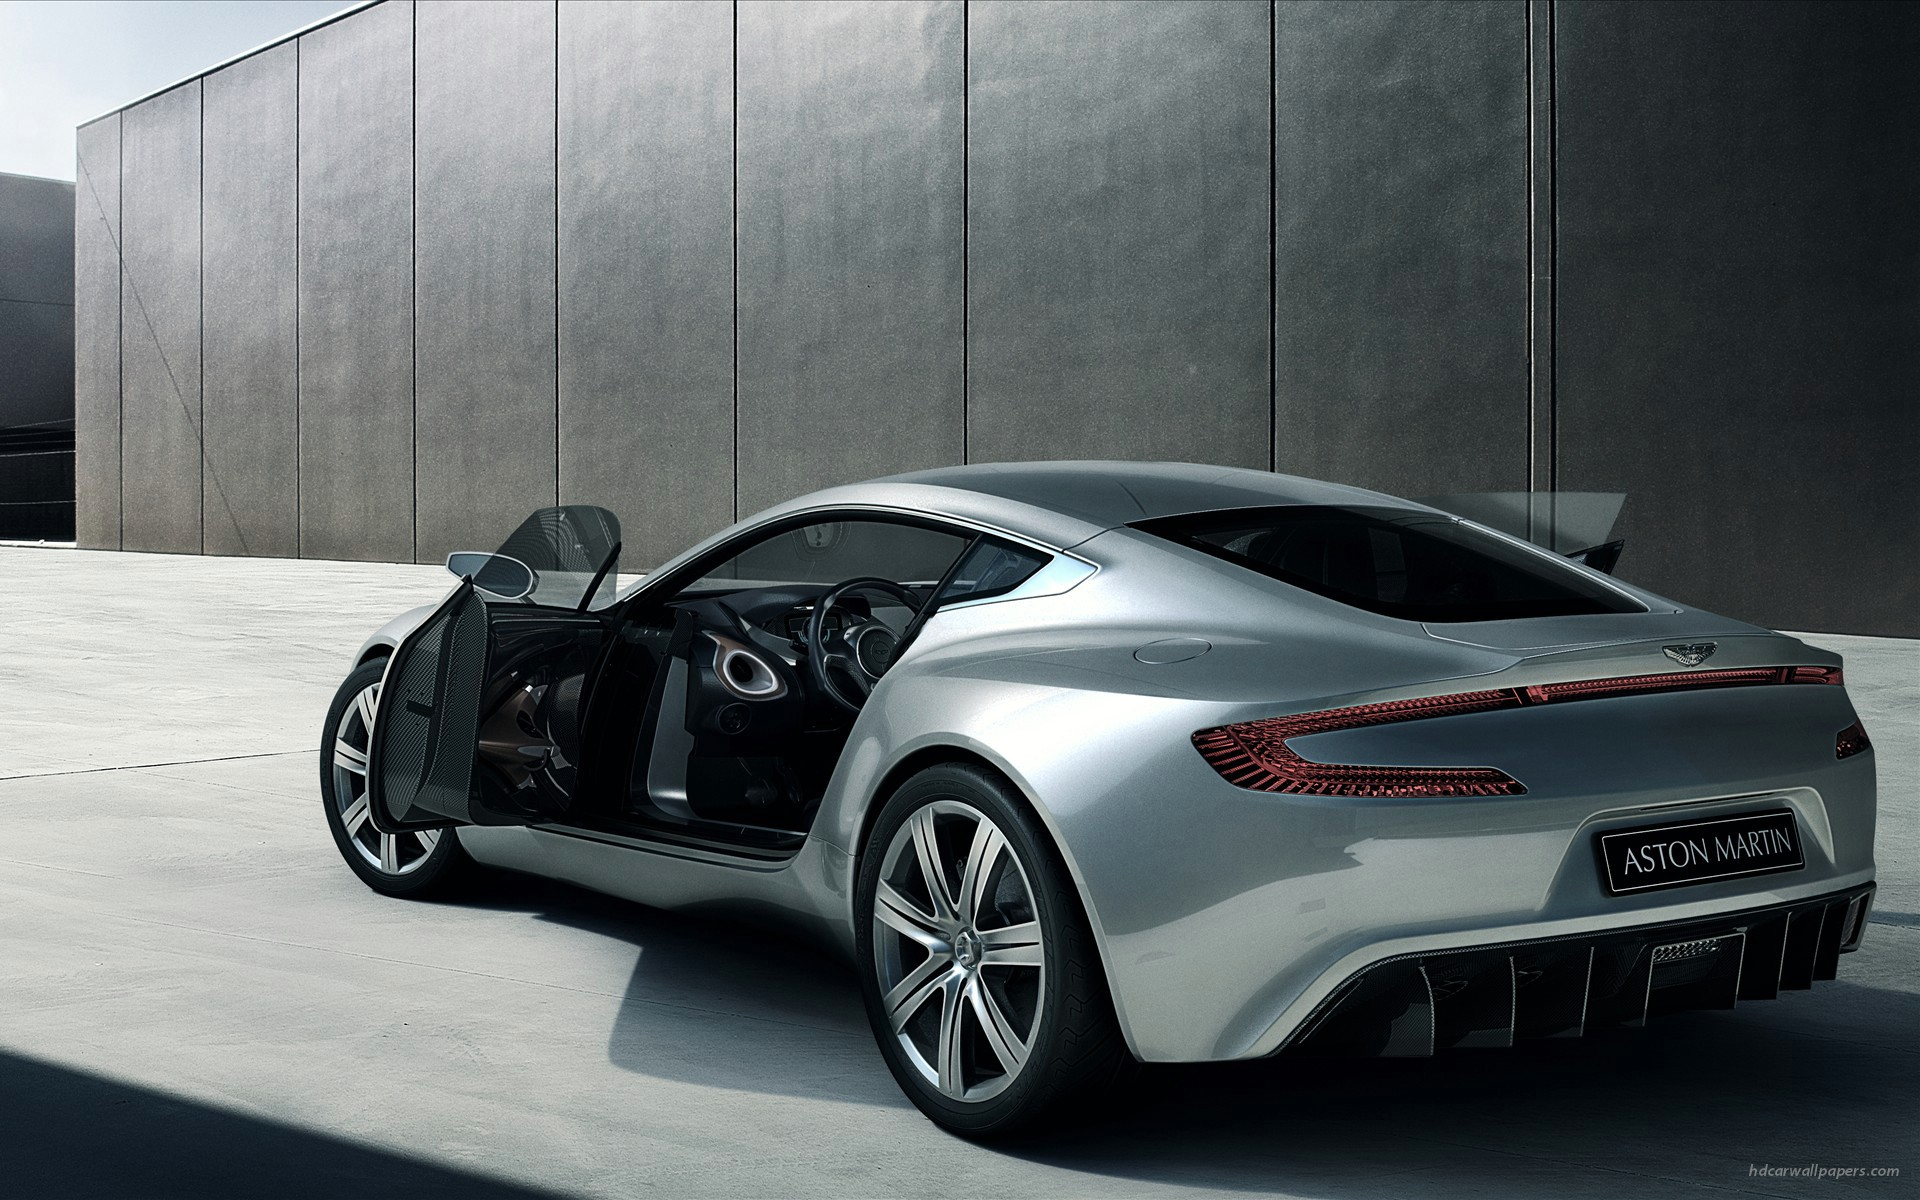 2010 Aston Martin One 77 Wallpaper 1920x1200